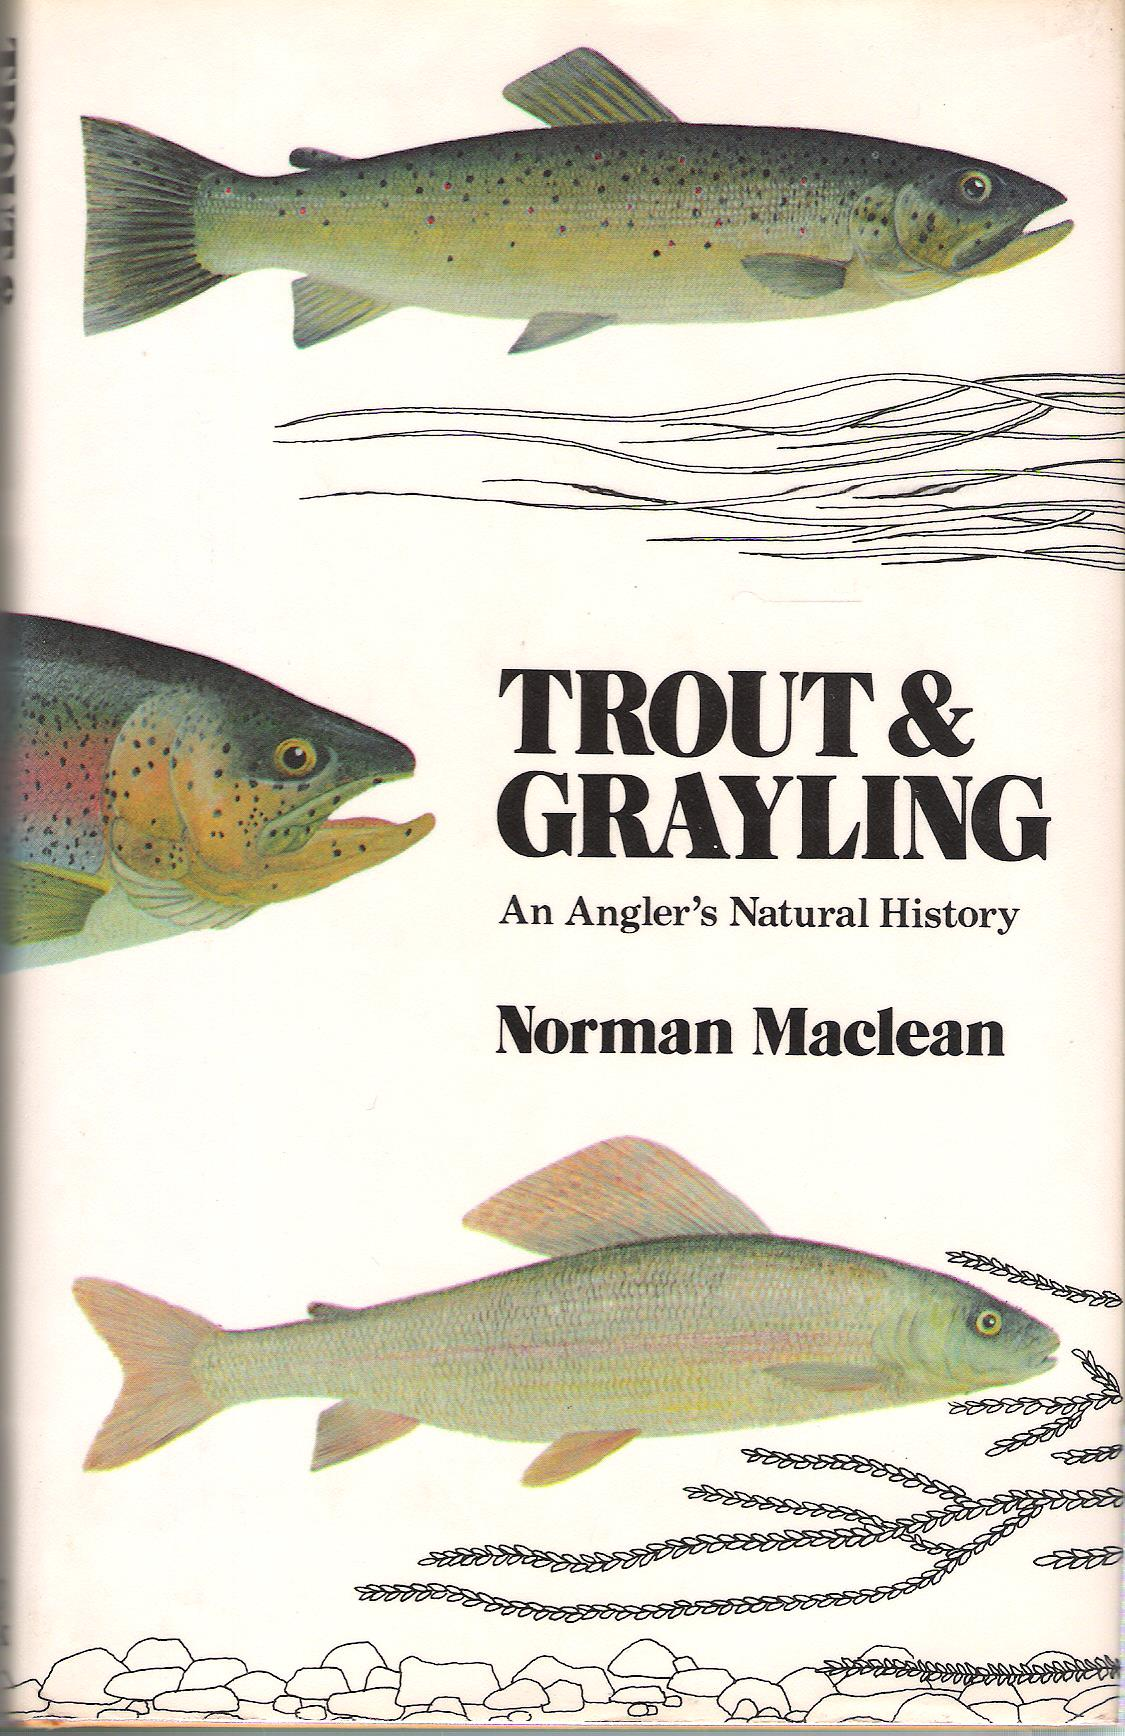 Image for Trout & Grayling: An Angler's Natural History.